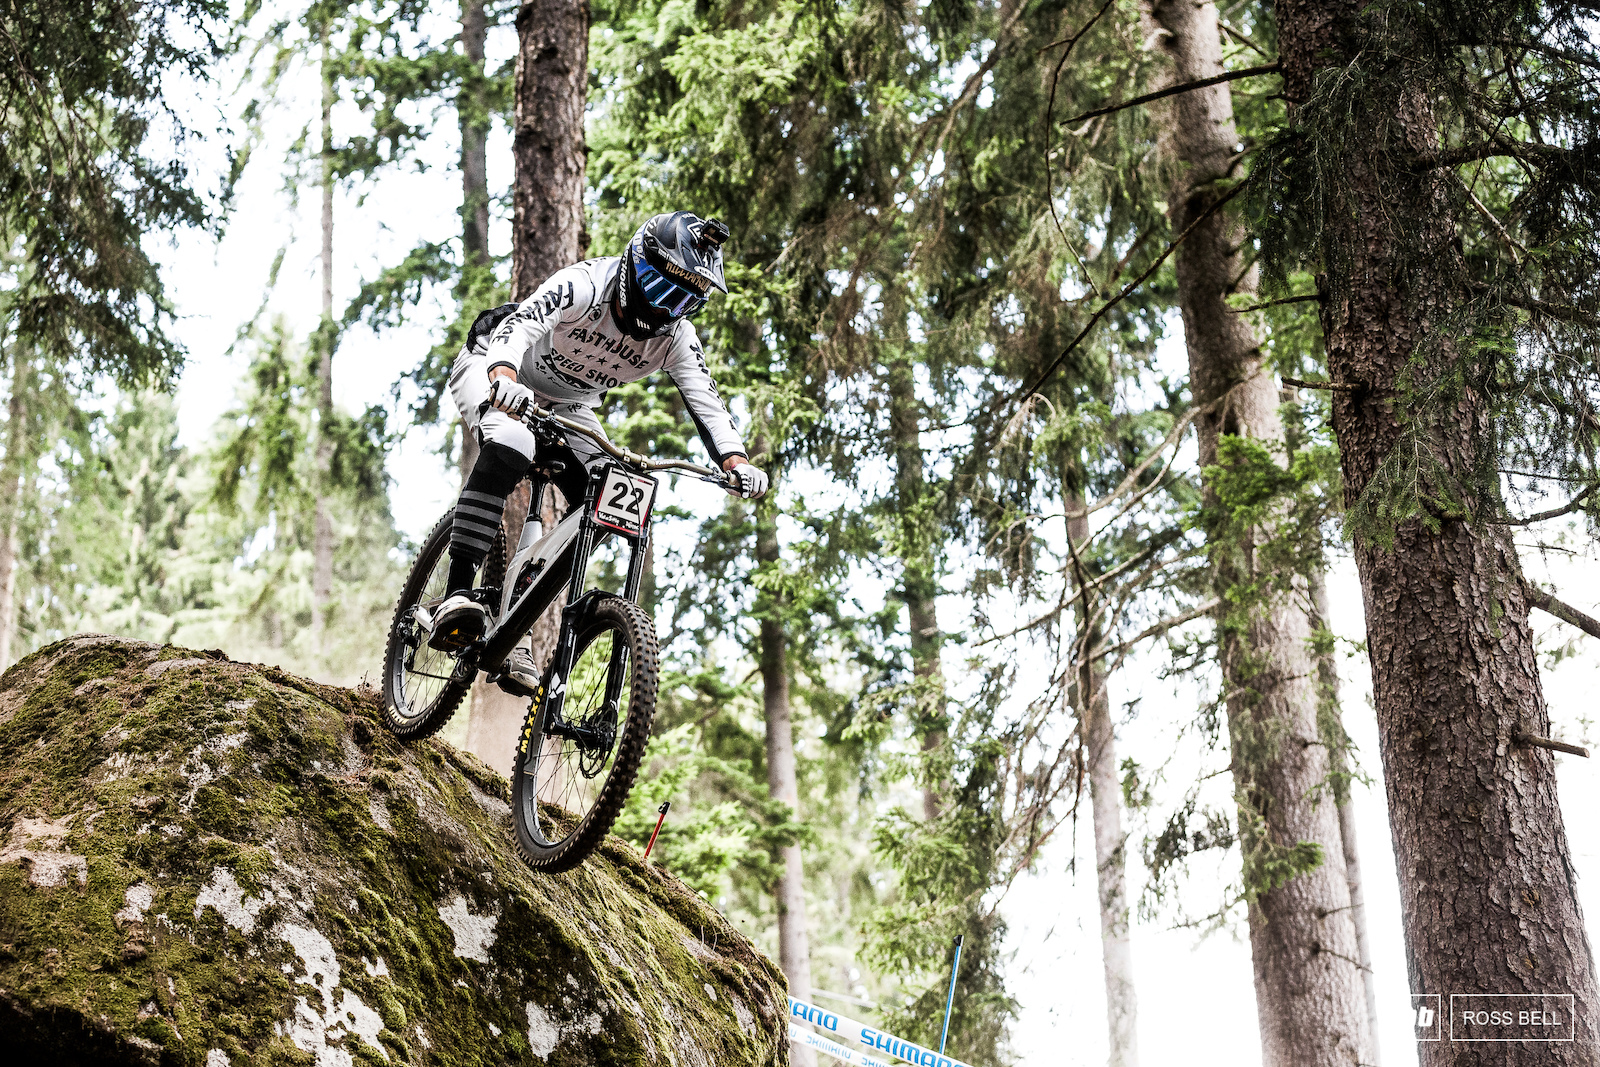 Greg Williamson was one of the only riders opting for this line over the massive boulder near the start of the woods.